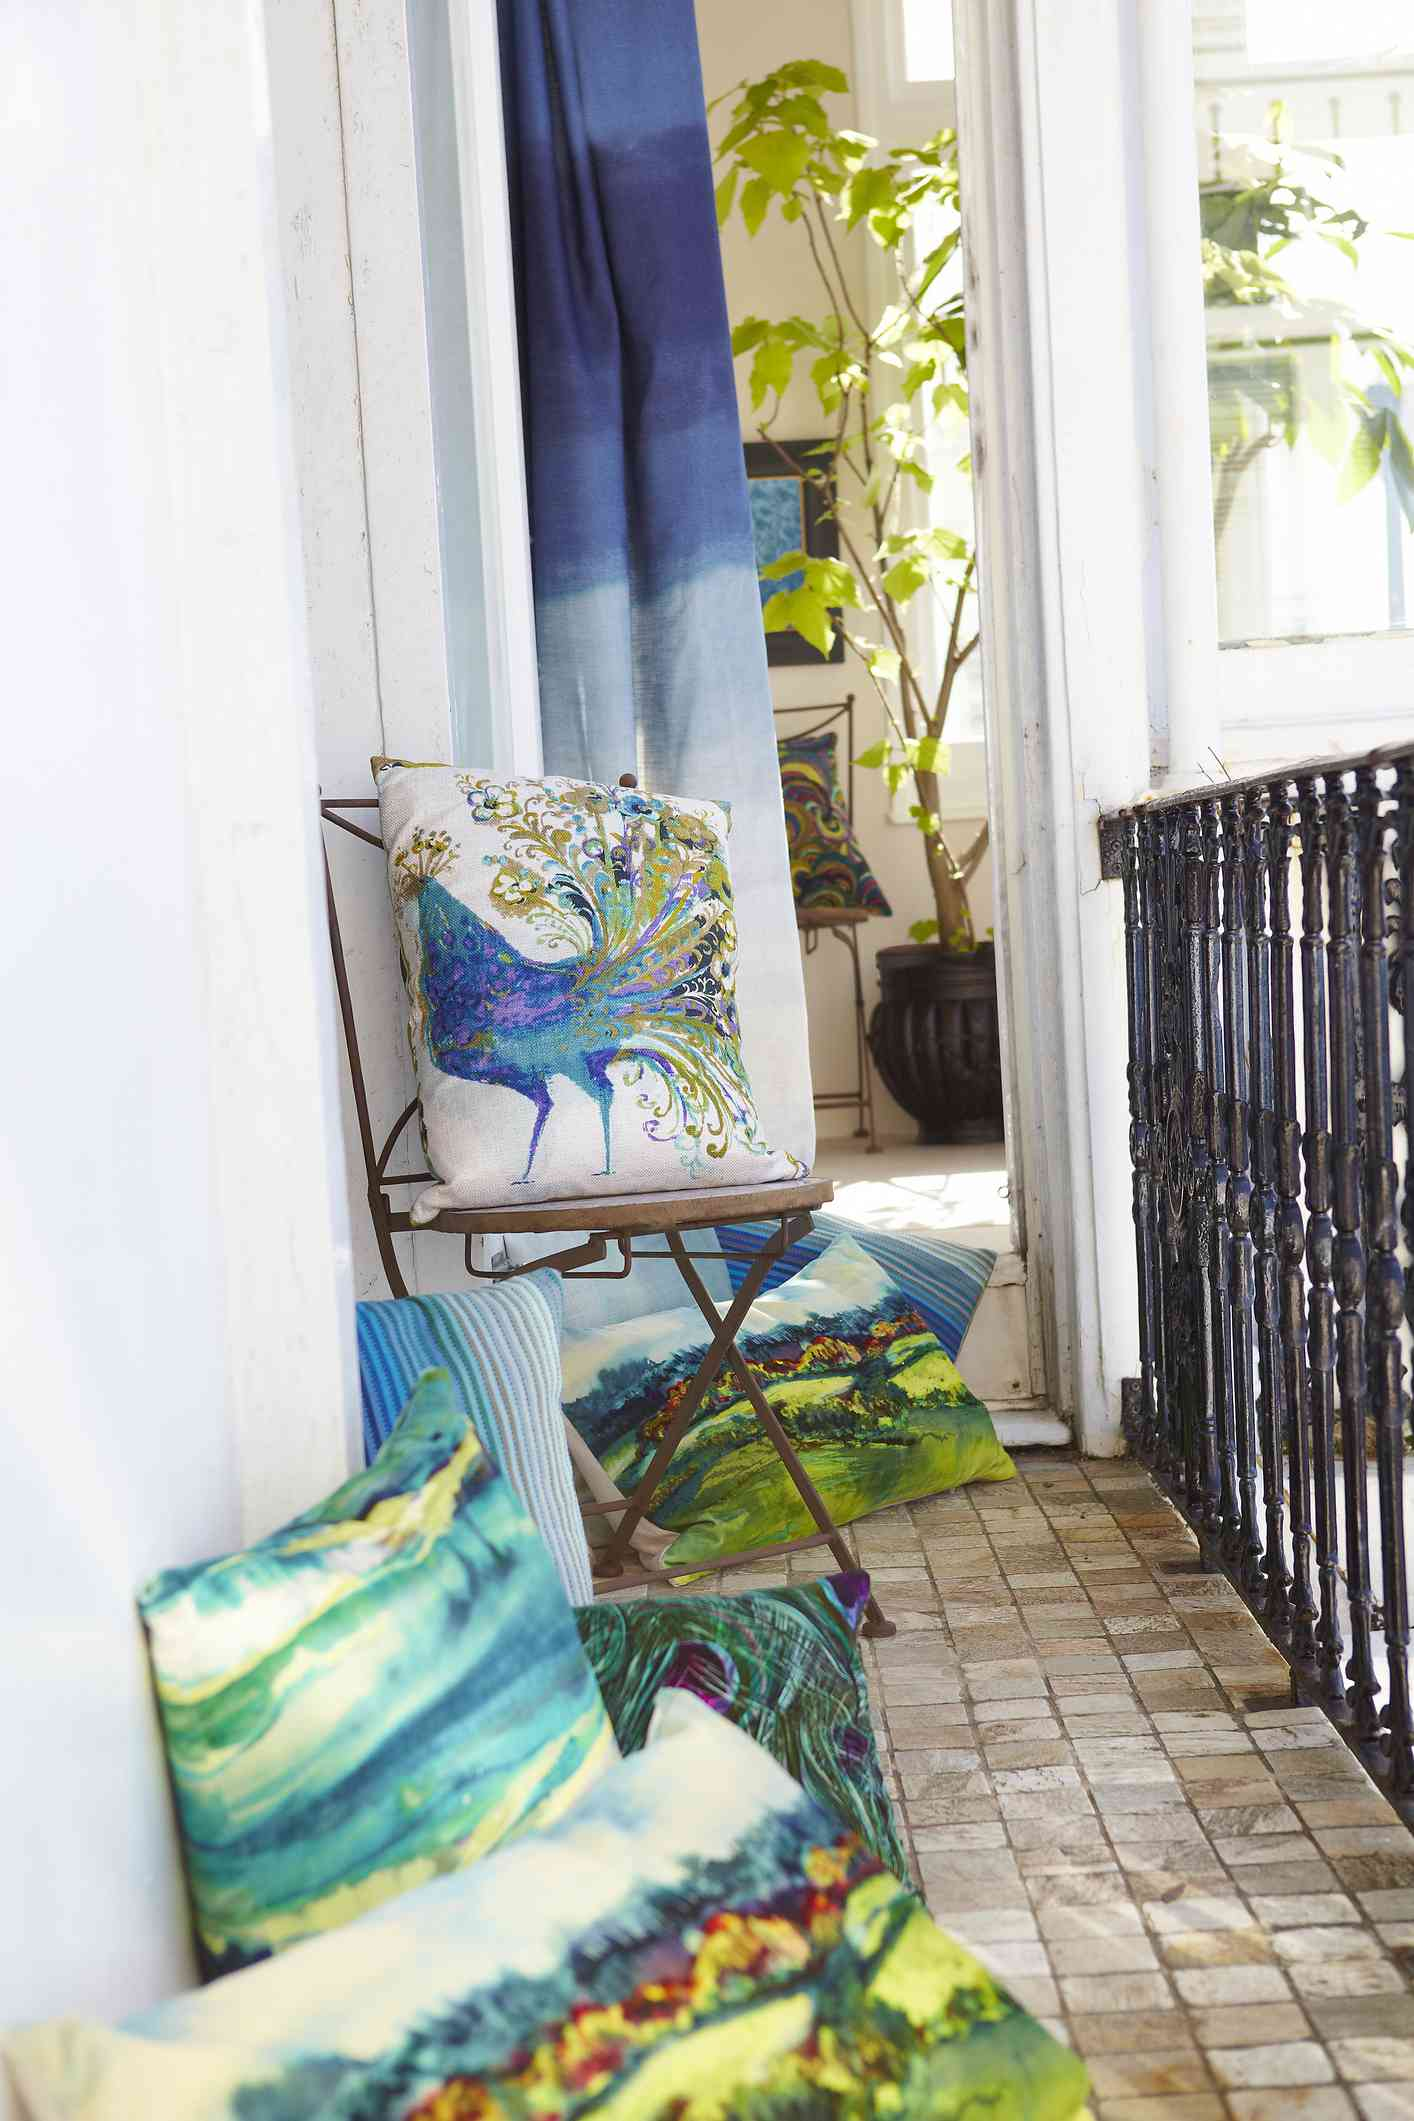 Balcony view with colorful peacock cushions on a chair